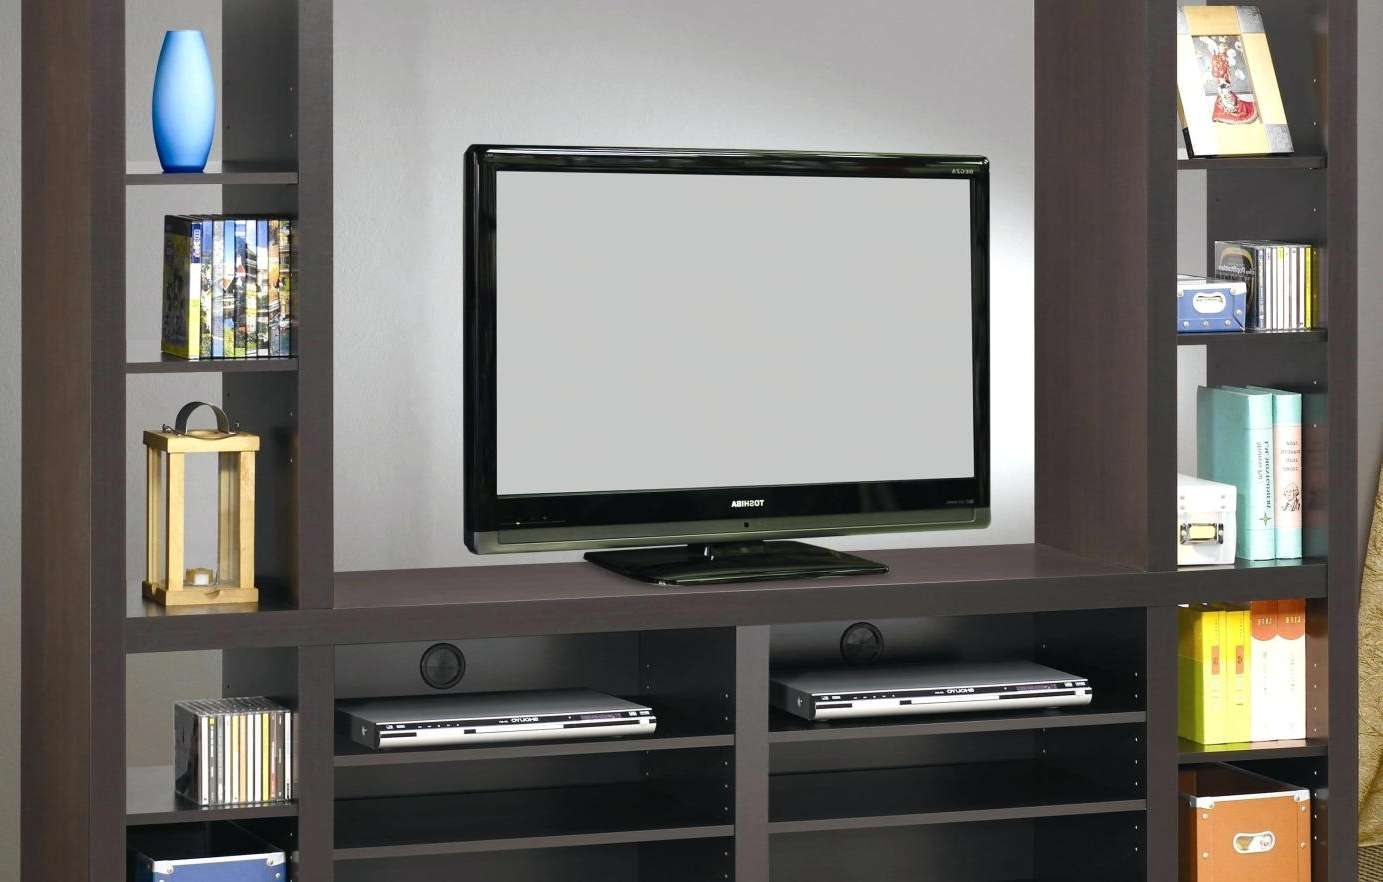 Tv : Mesmerize 44 Swivel Black Glass Tv Stand Compelling Swivel Inside Swivel Black Glass Tv Stands (View 13 of 15)